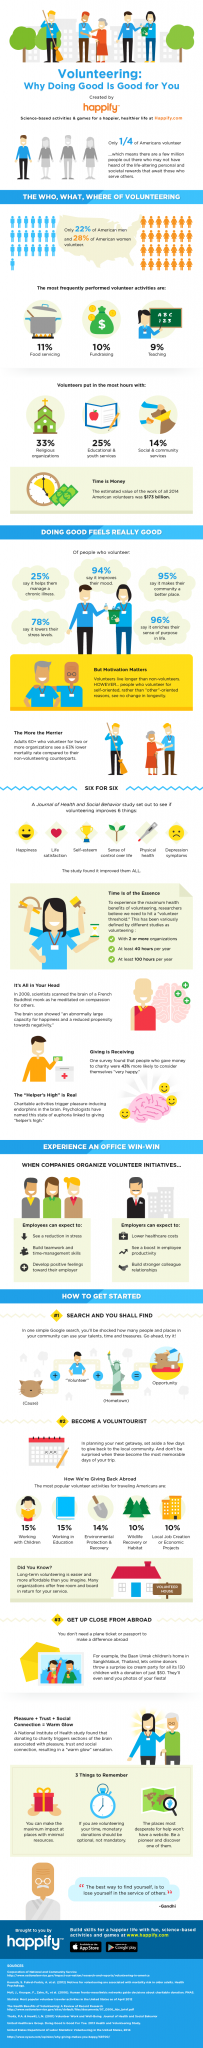 Benefits of volunteering infographic